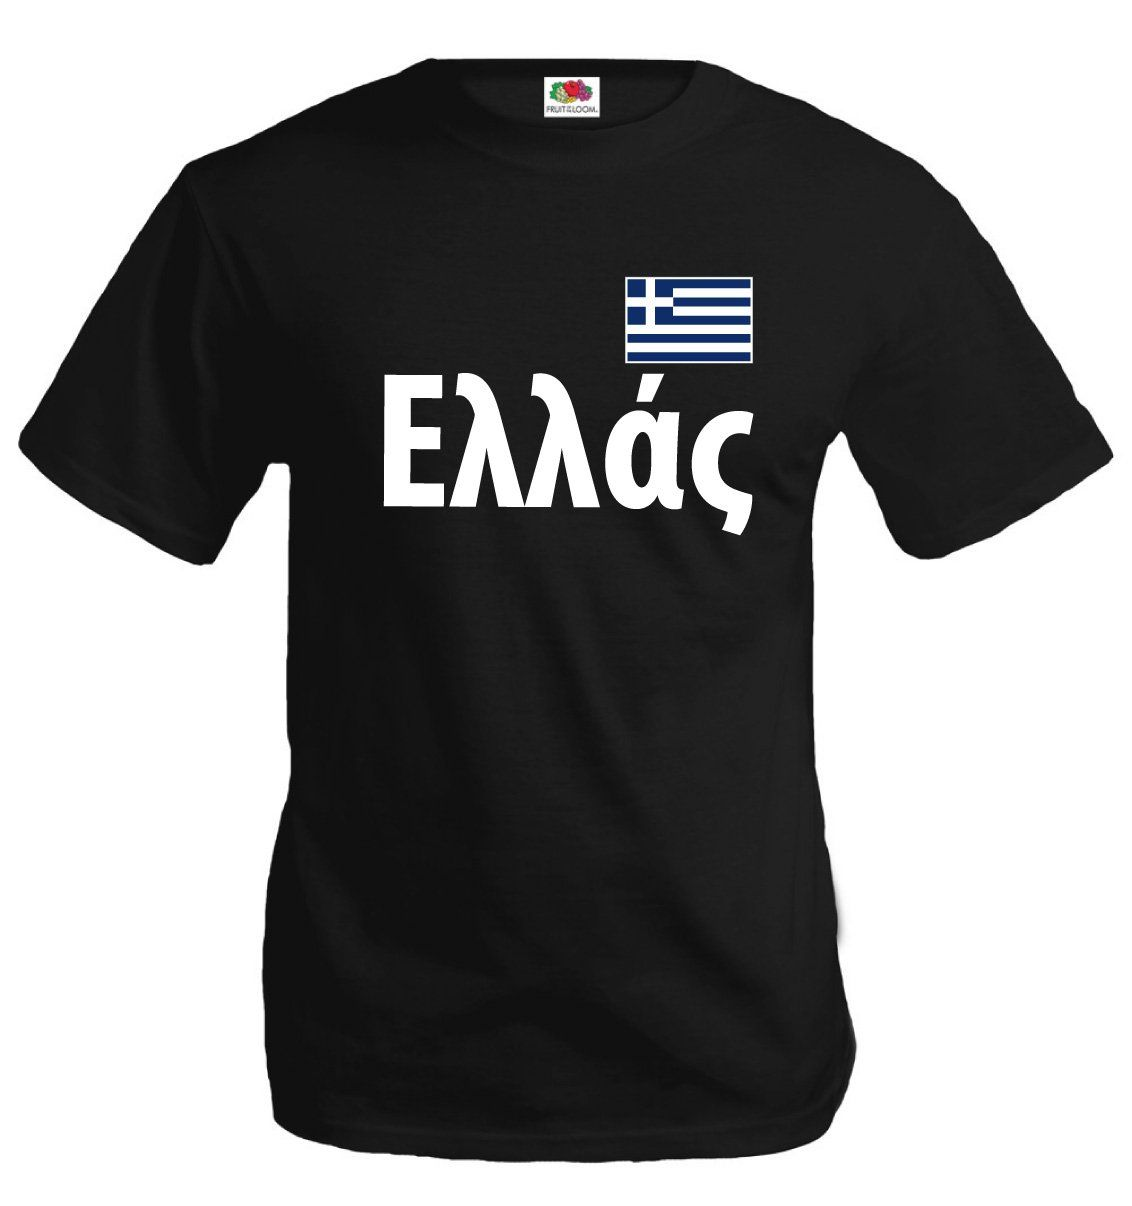 buXsbaum T-Shirt GREECE-L-black. produced and designed by buXsbaum. Fruit of the Loom T-Shirt. 100% cotton. high quality durable print. Machine Washable, 30 degrees and iron on reverse of print.